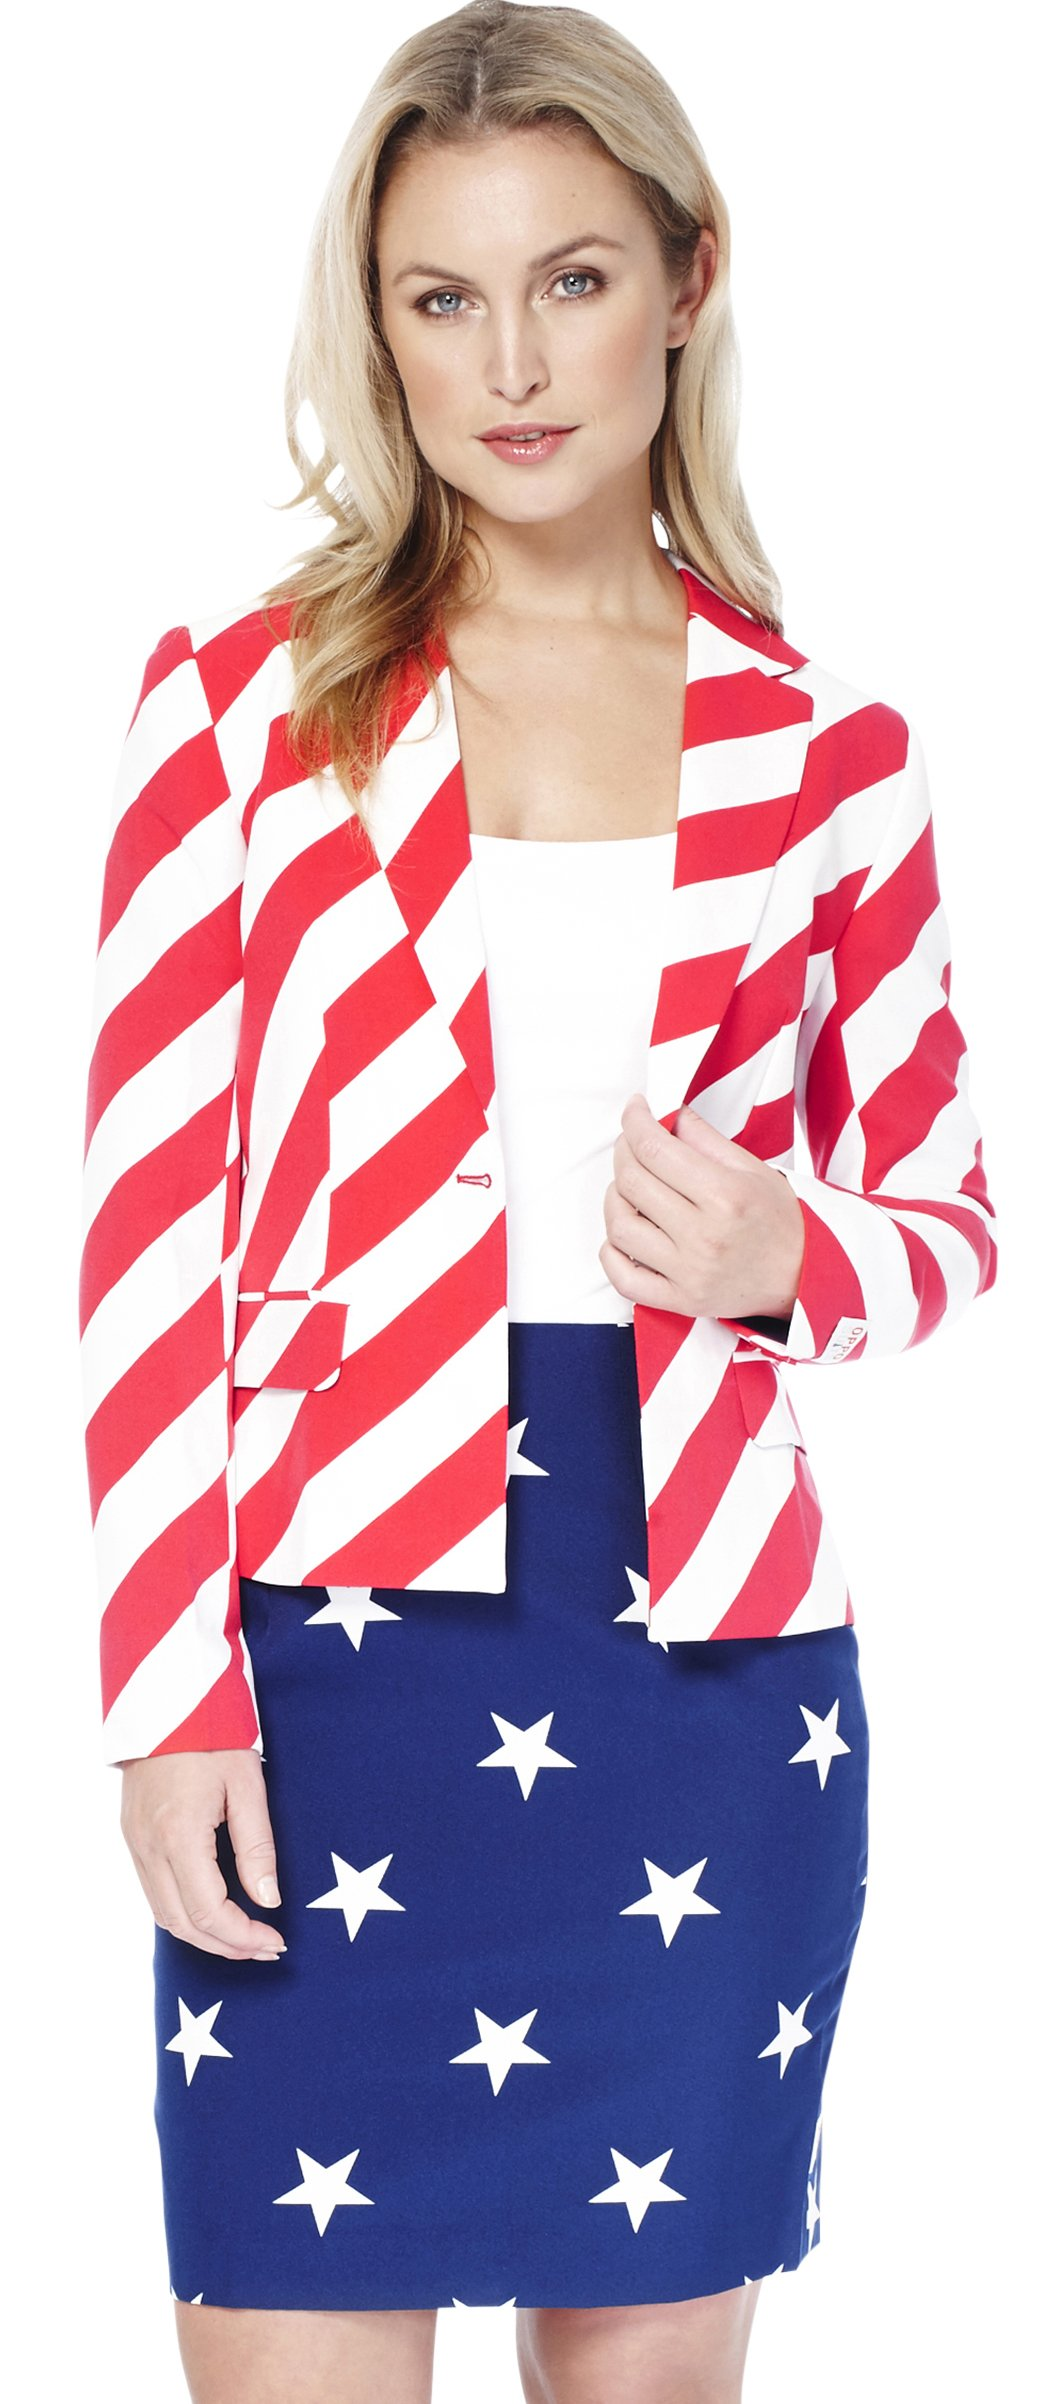 Opposuits Womens 'American Woman' Party Suit by, 8